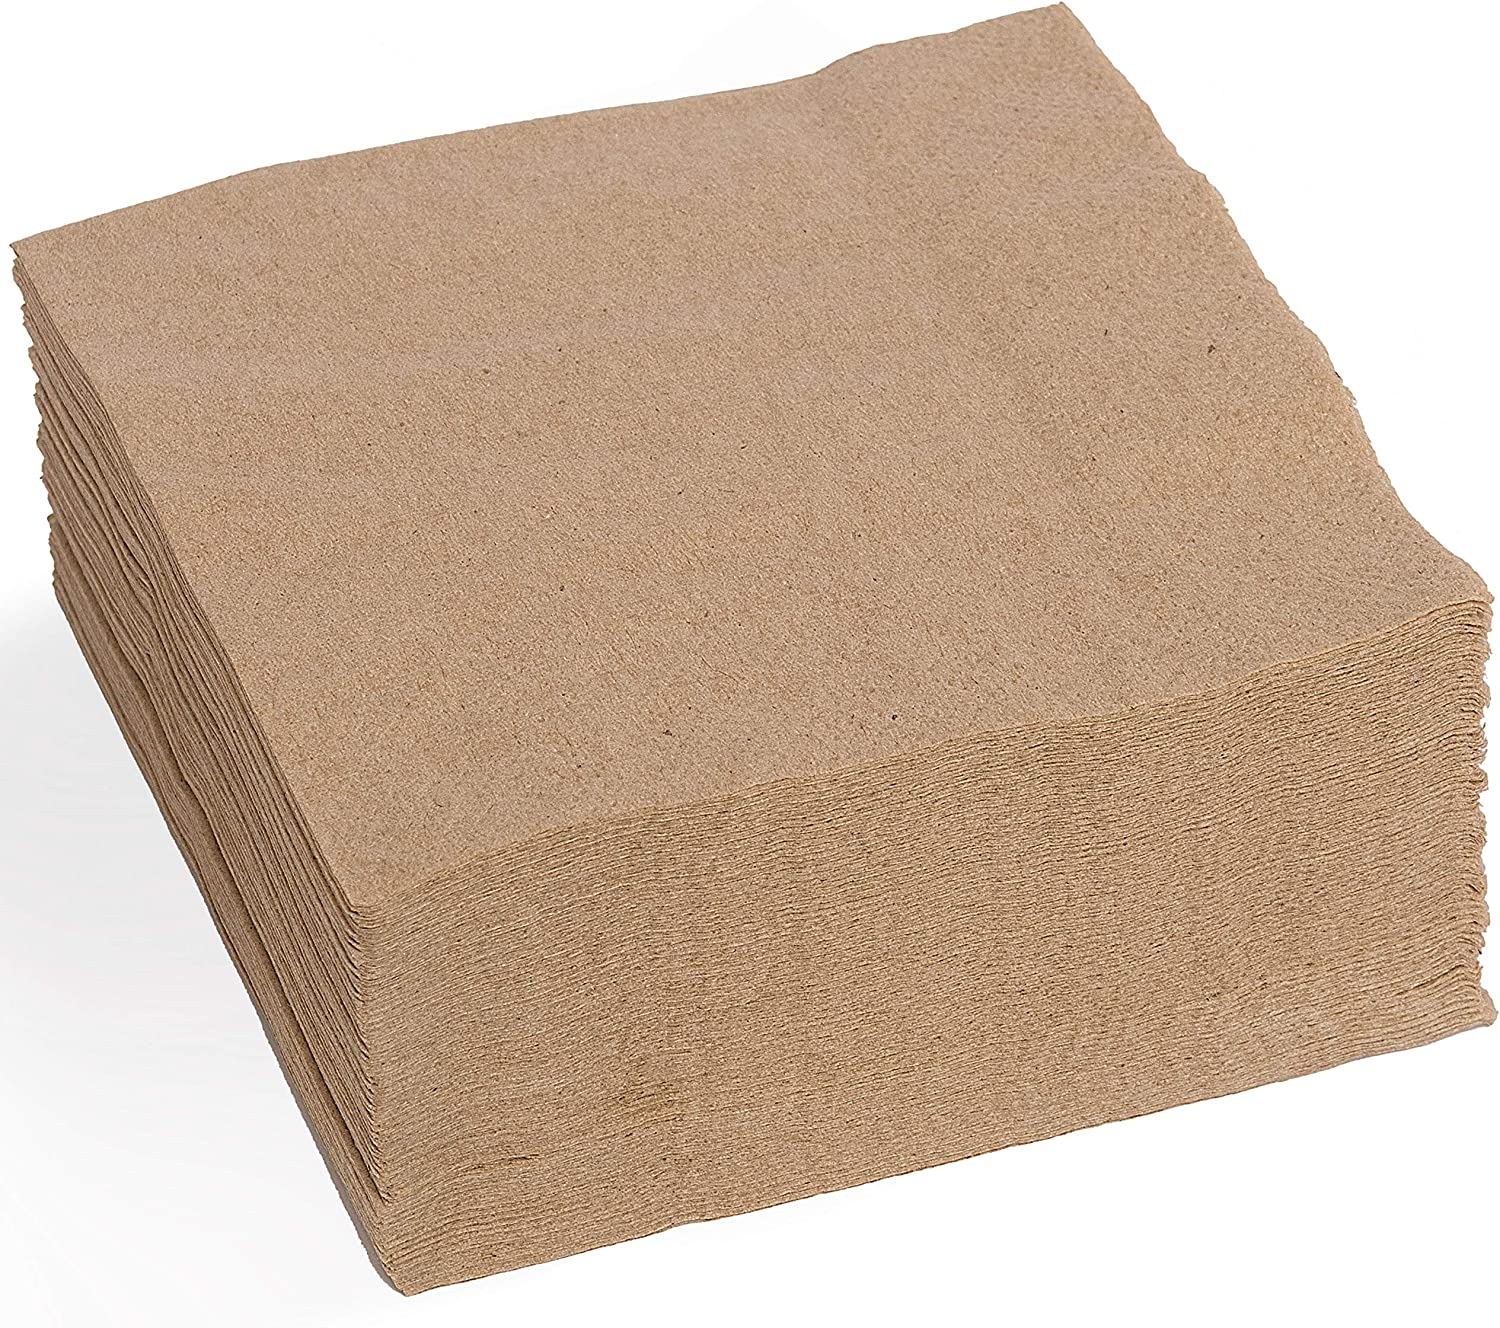 """100 Sustainable Biodegradable Natural Cocktail Napkins – 100% Recycled Paper Beverage Napkins, 4.5""""x4.5"""" – Eco Friendly Compostable Disposable Unbleached Brown Recycled Paper Dinner Napkins – MOCKO"""